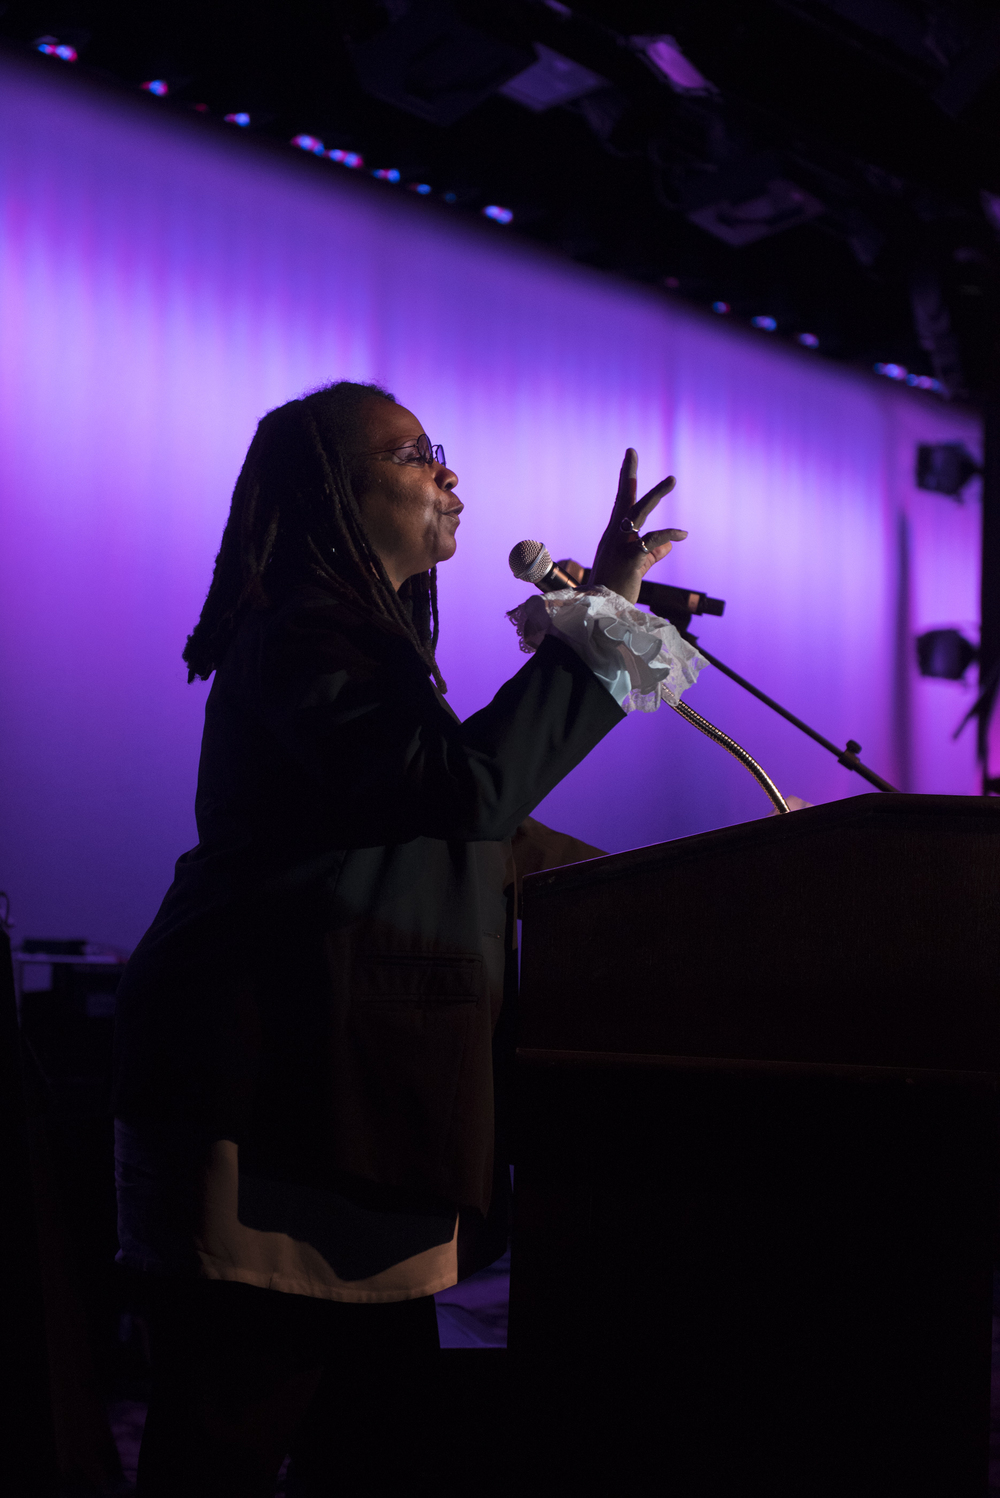 Whoopi Goldberg impersonator Bettina Williams co-hosts The Reel Awards at Golden Nugget Hotel Casino in Las Vegas Monday, Feb. 22, 2016. The Reel Awards are meant to be a humorous tribute to the real Academy Awards. Jason Ogulnik/Las Vegas Review-Journal